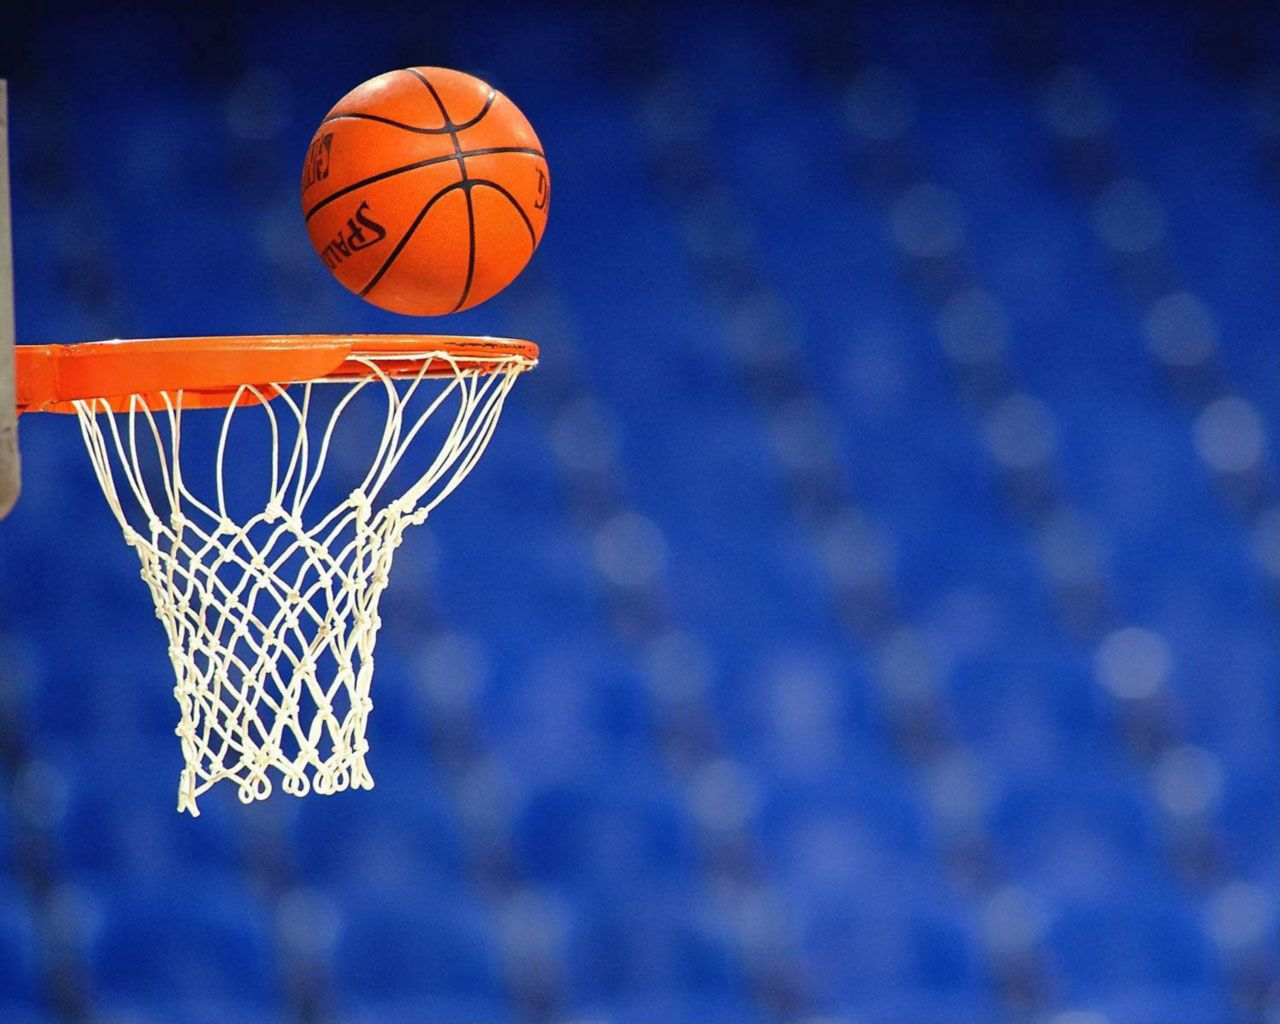 Egypt Basketball Federation to resume action on August 15 - Sports Leo